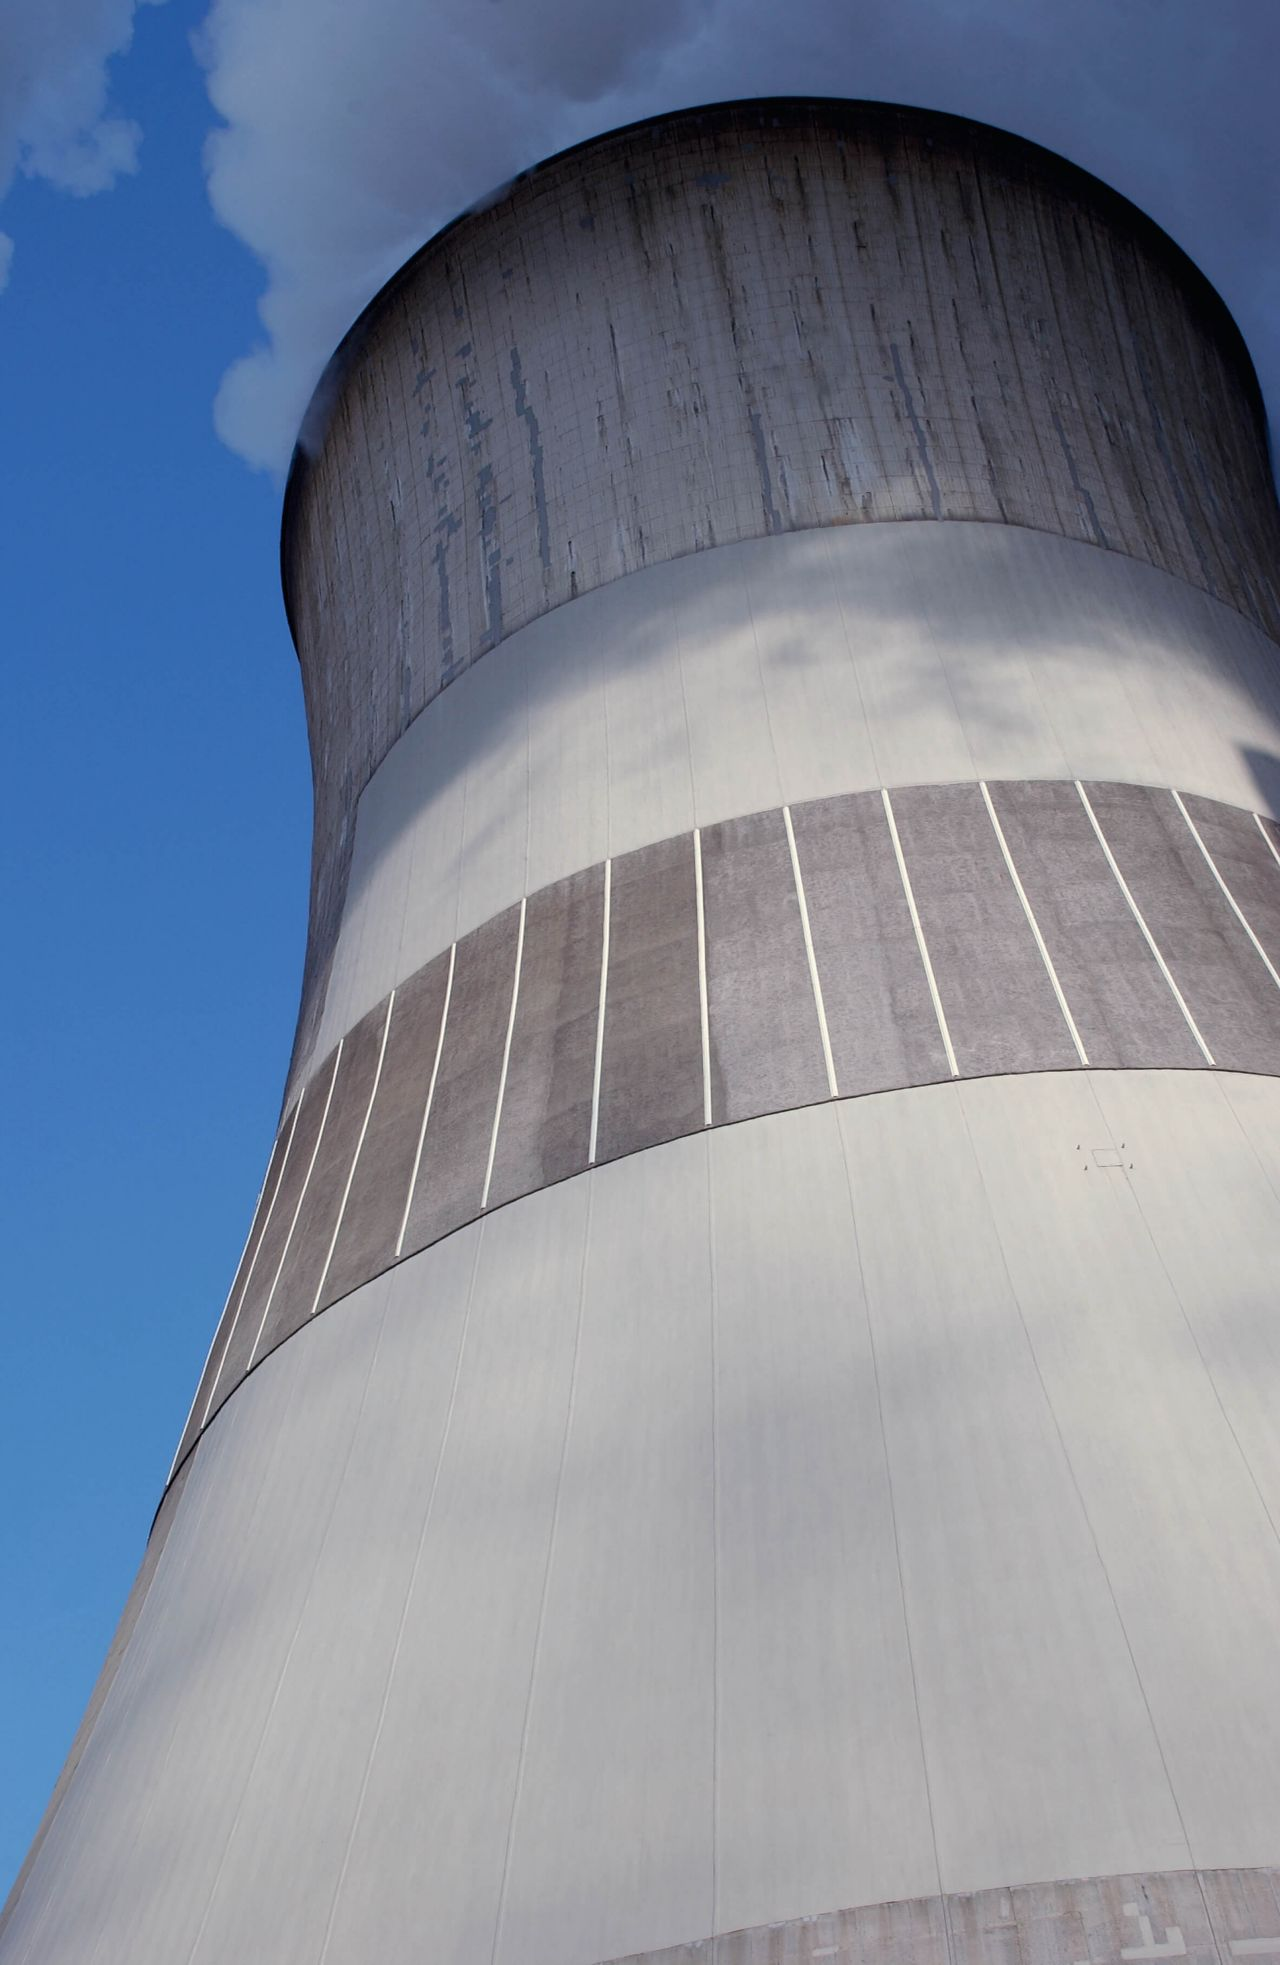 Cooling tower strengthening